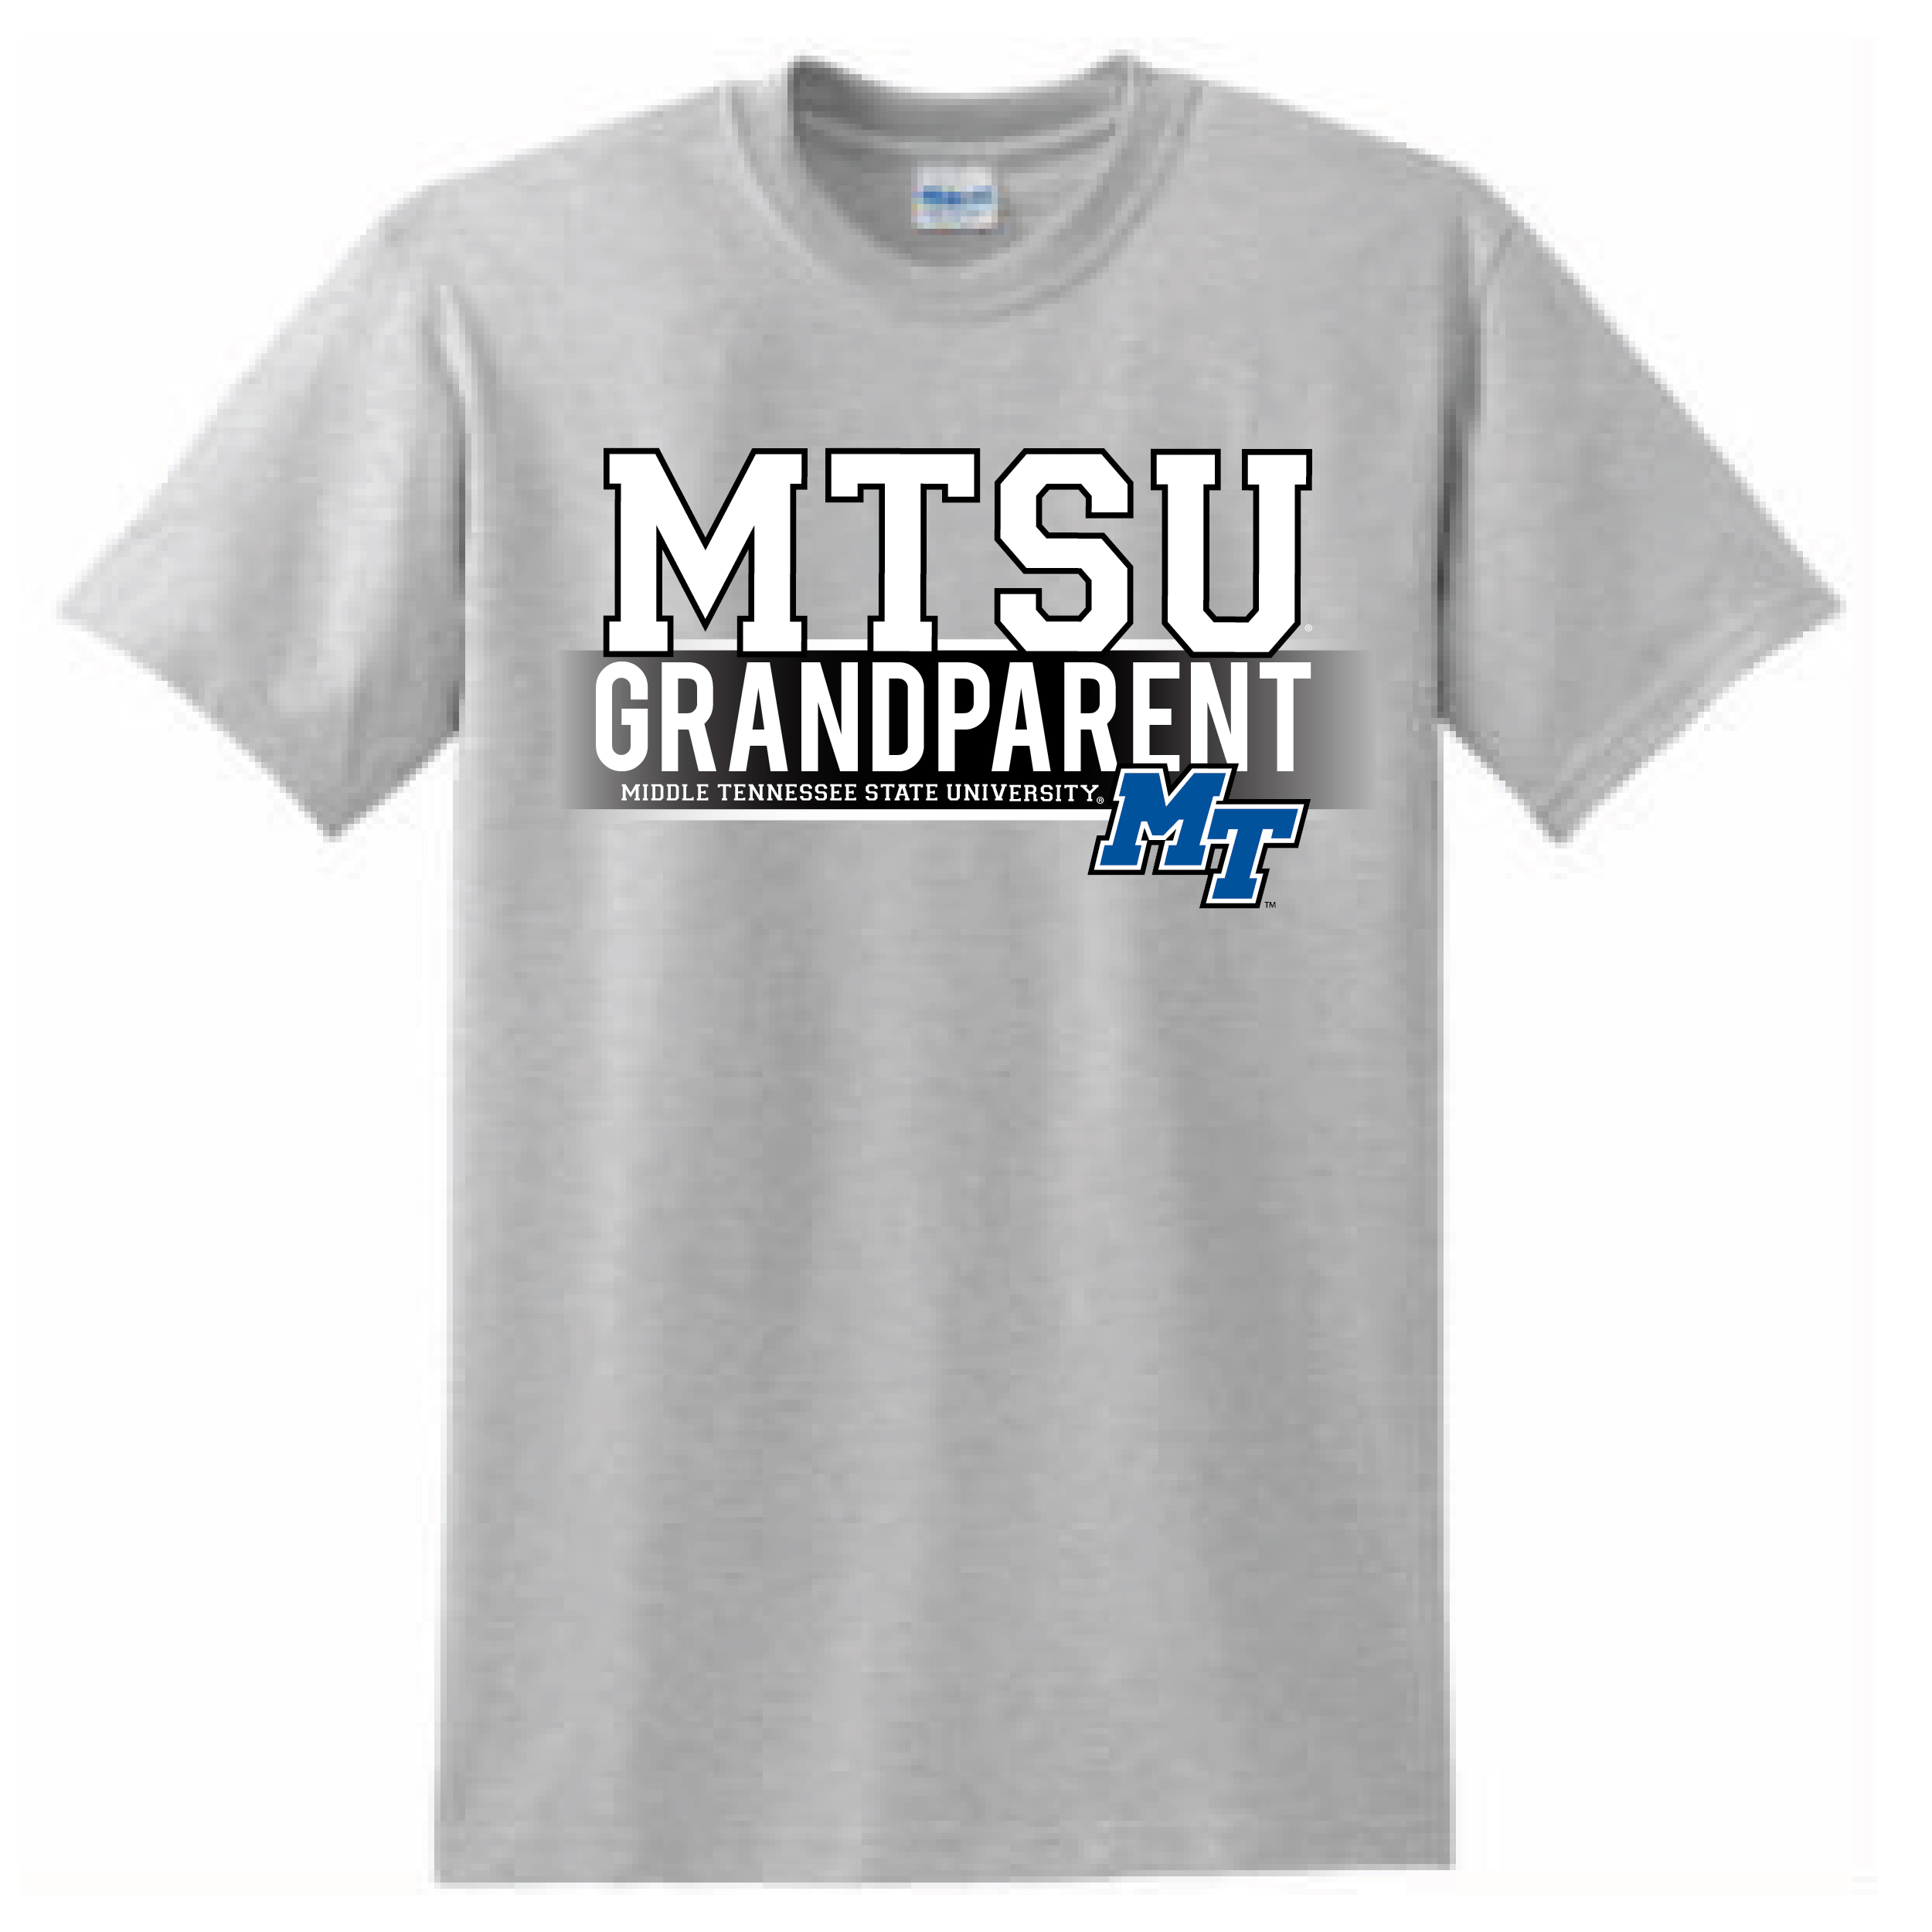 MTSU Grandparent Tshirt